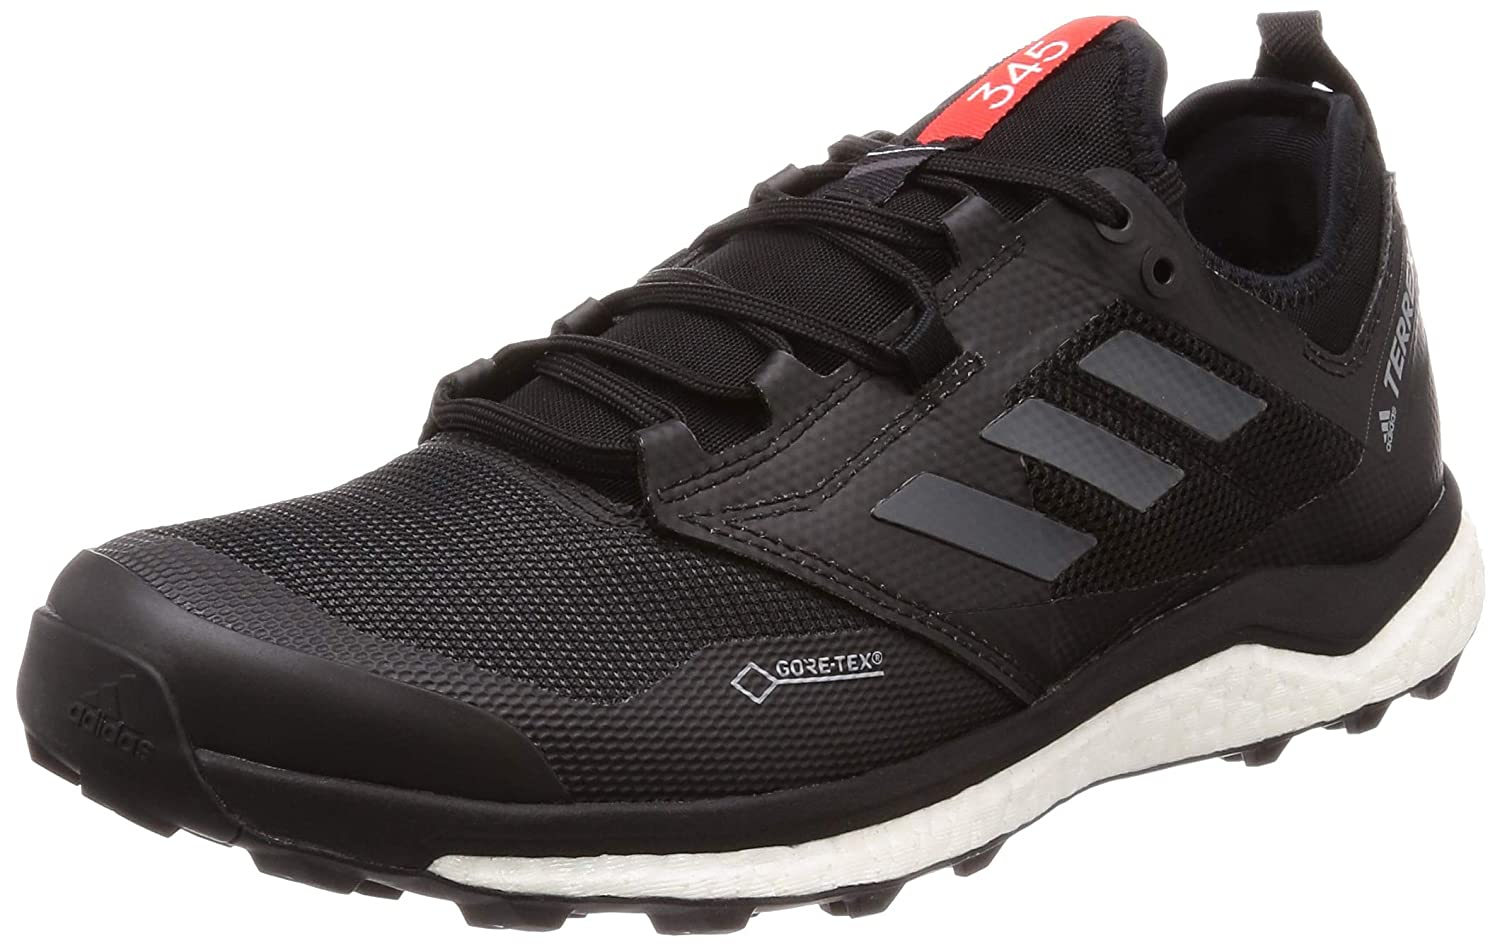 7809f5a1d065 adidas Men s Terrex Agravic Xt GTX Nordic Walking Shoes Black   Amazon.co.uk  Shoes   Bags